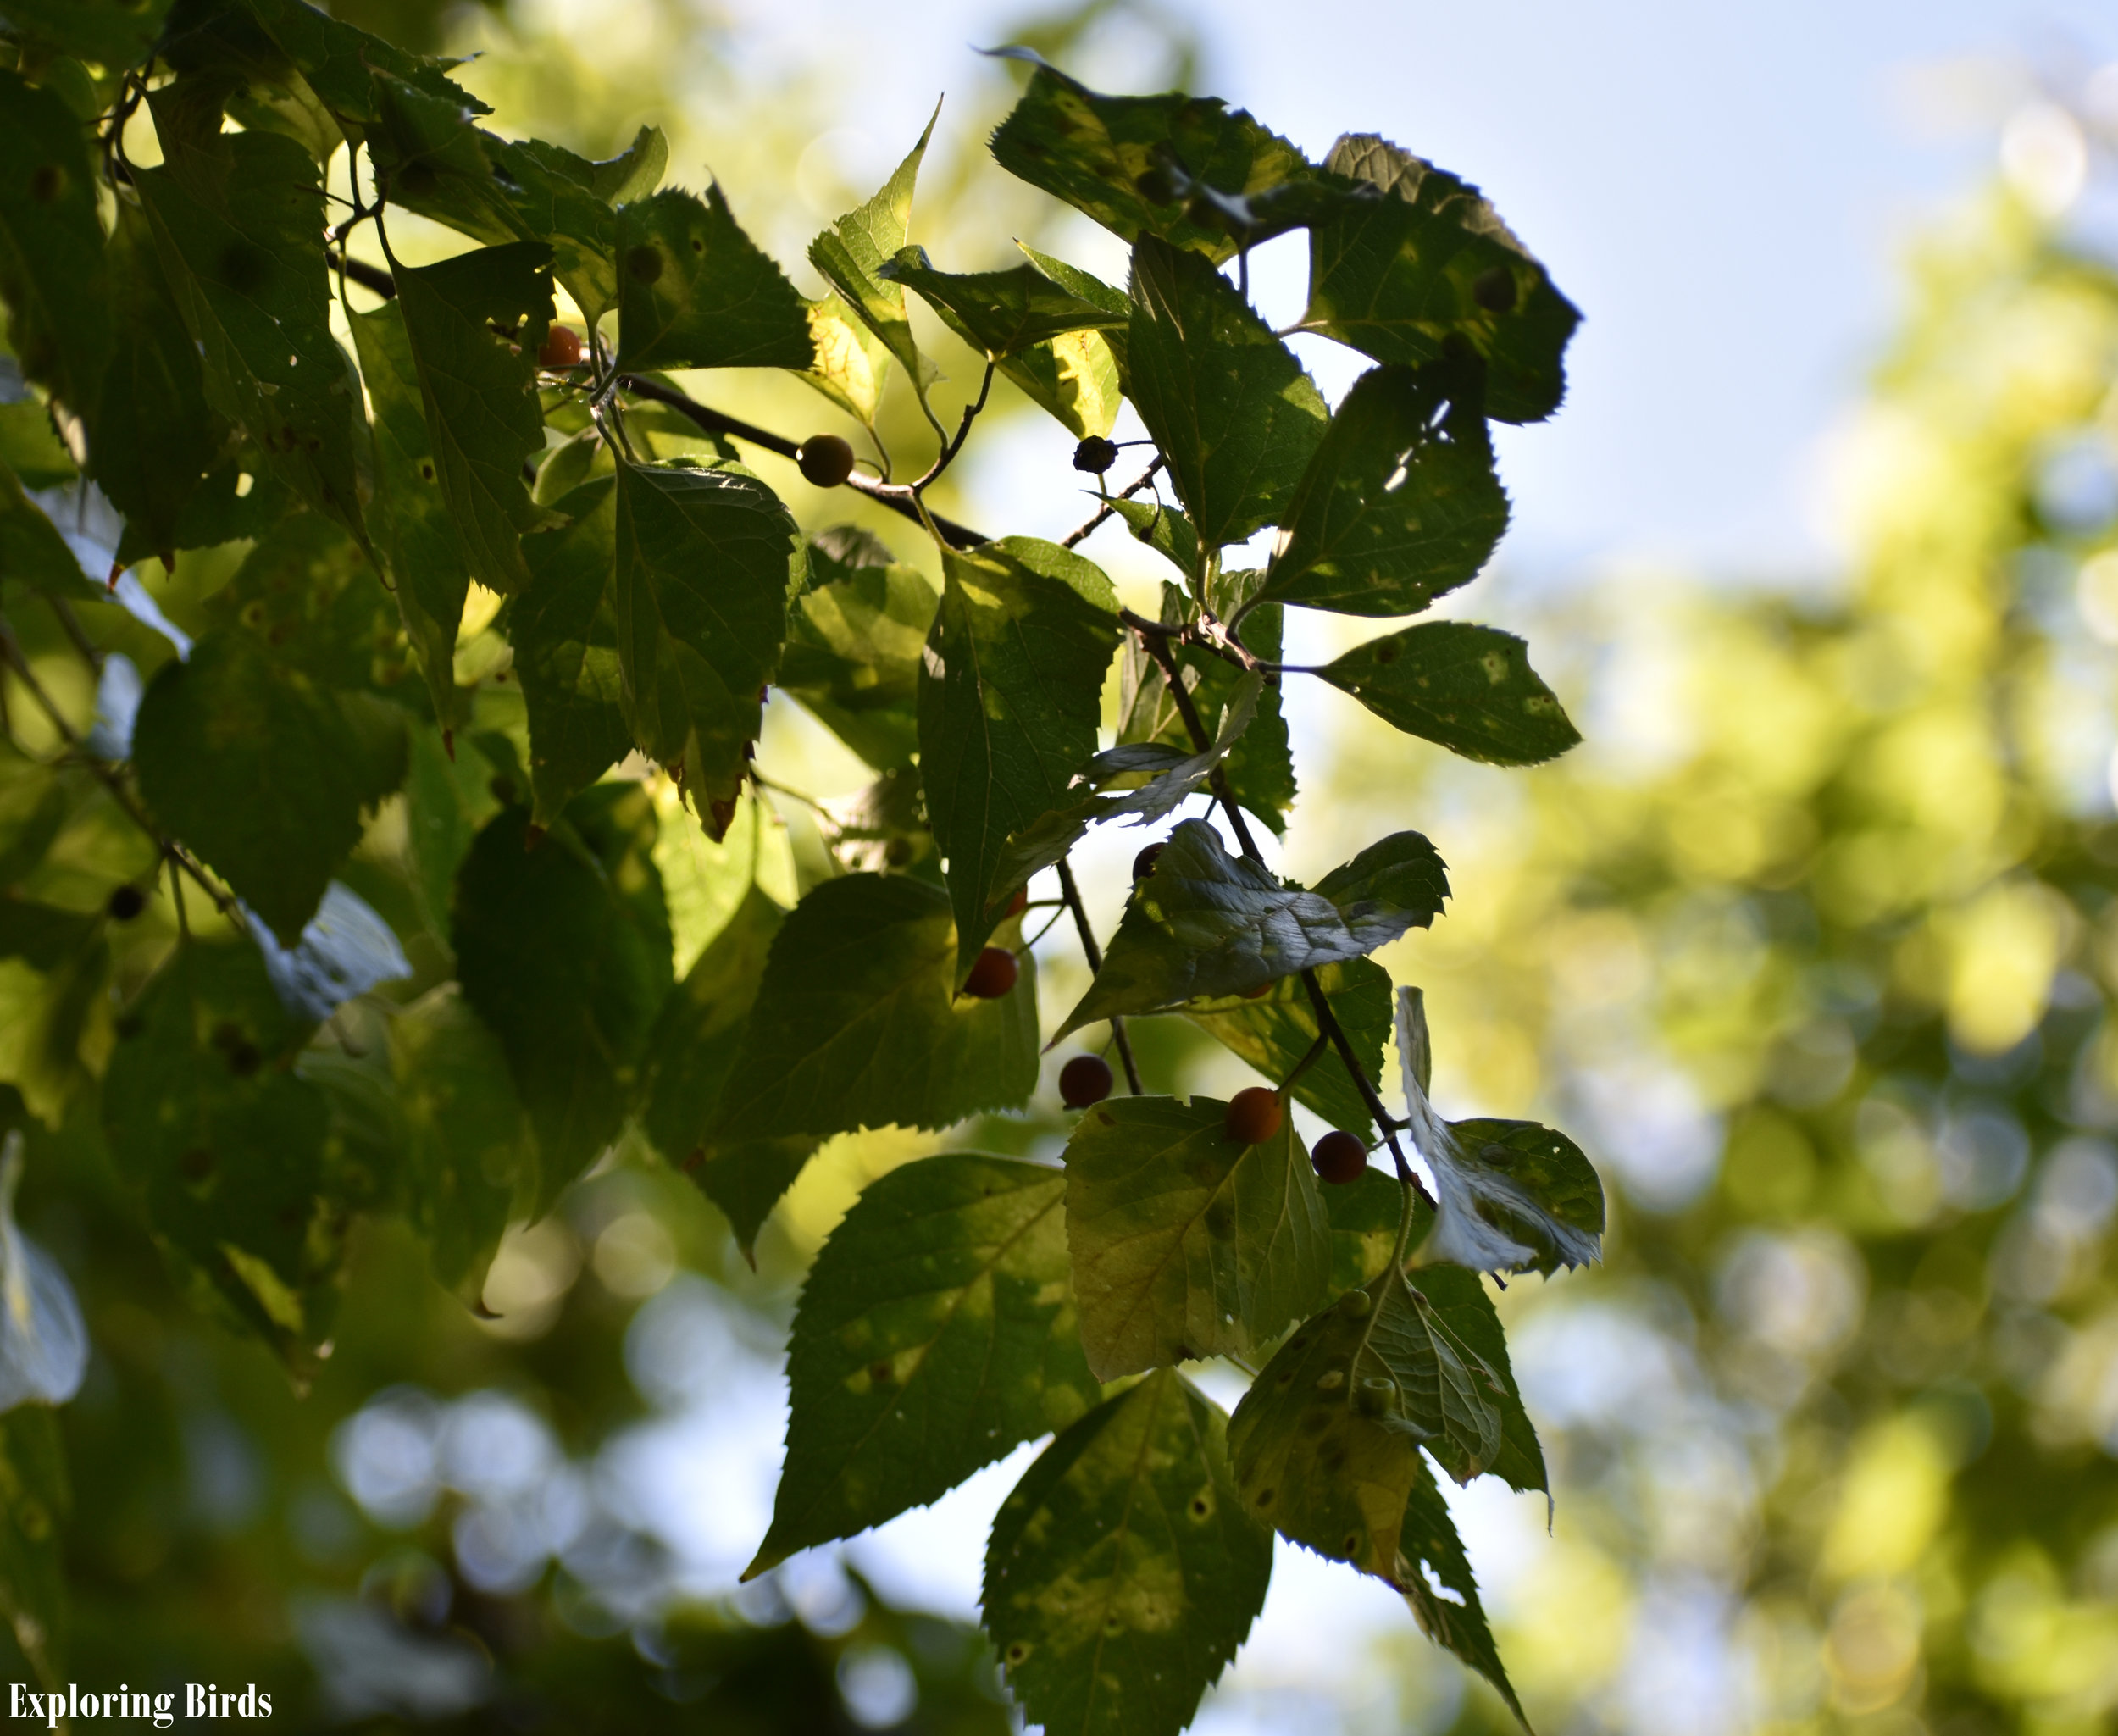 Northern Hackberry berries are eaten by birds